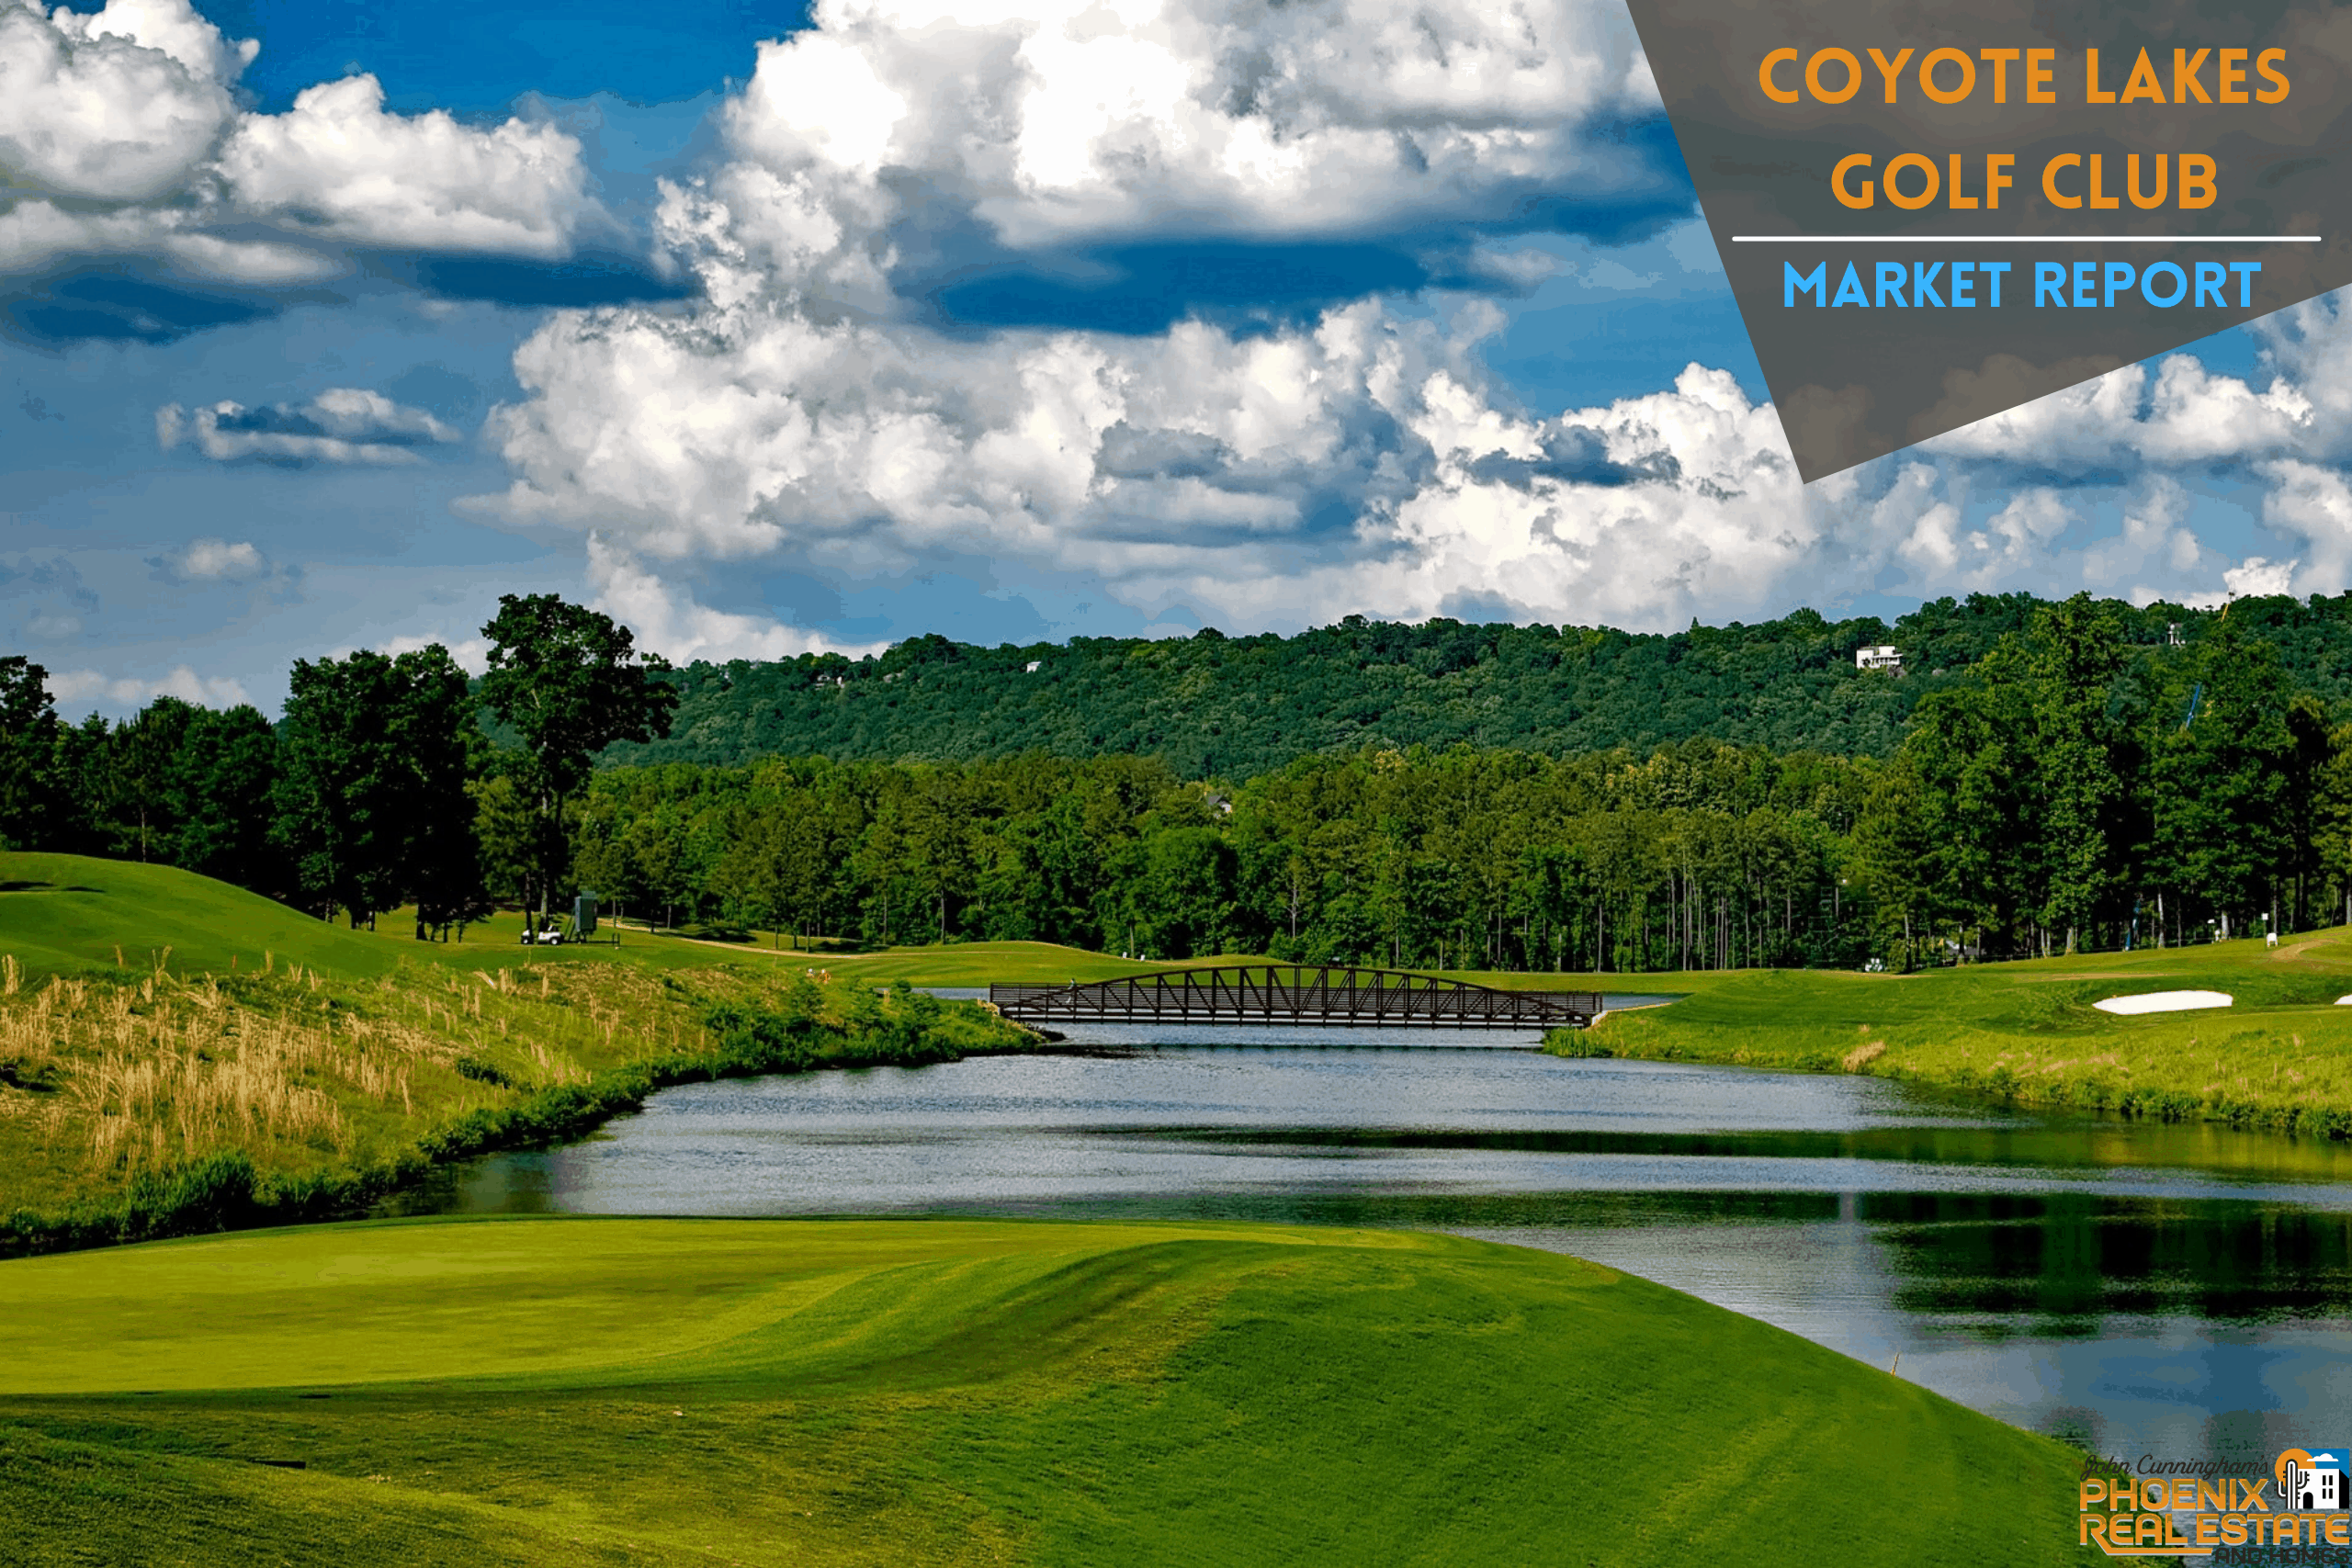 Coyote Lakes Golf Club Market Report